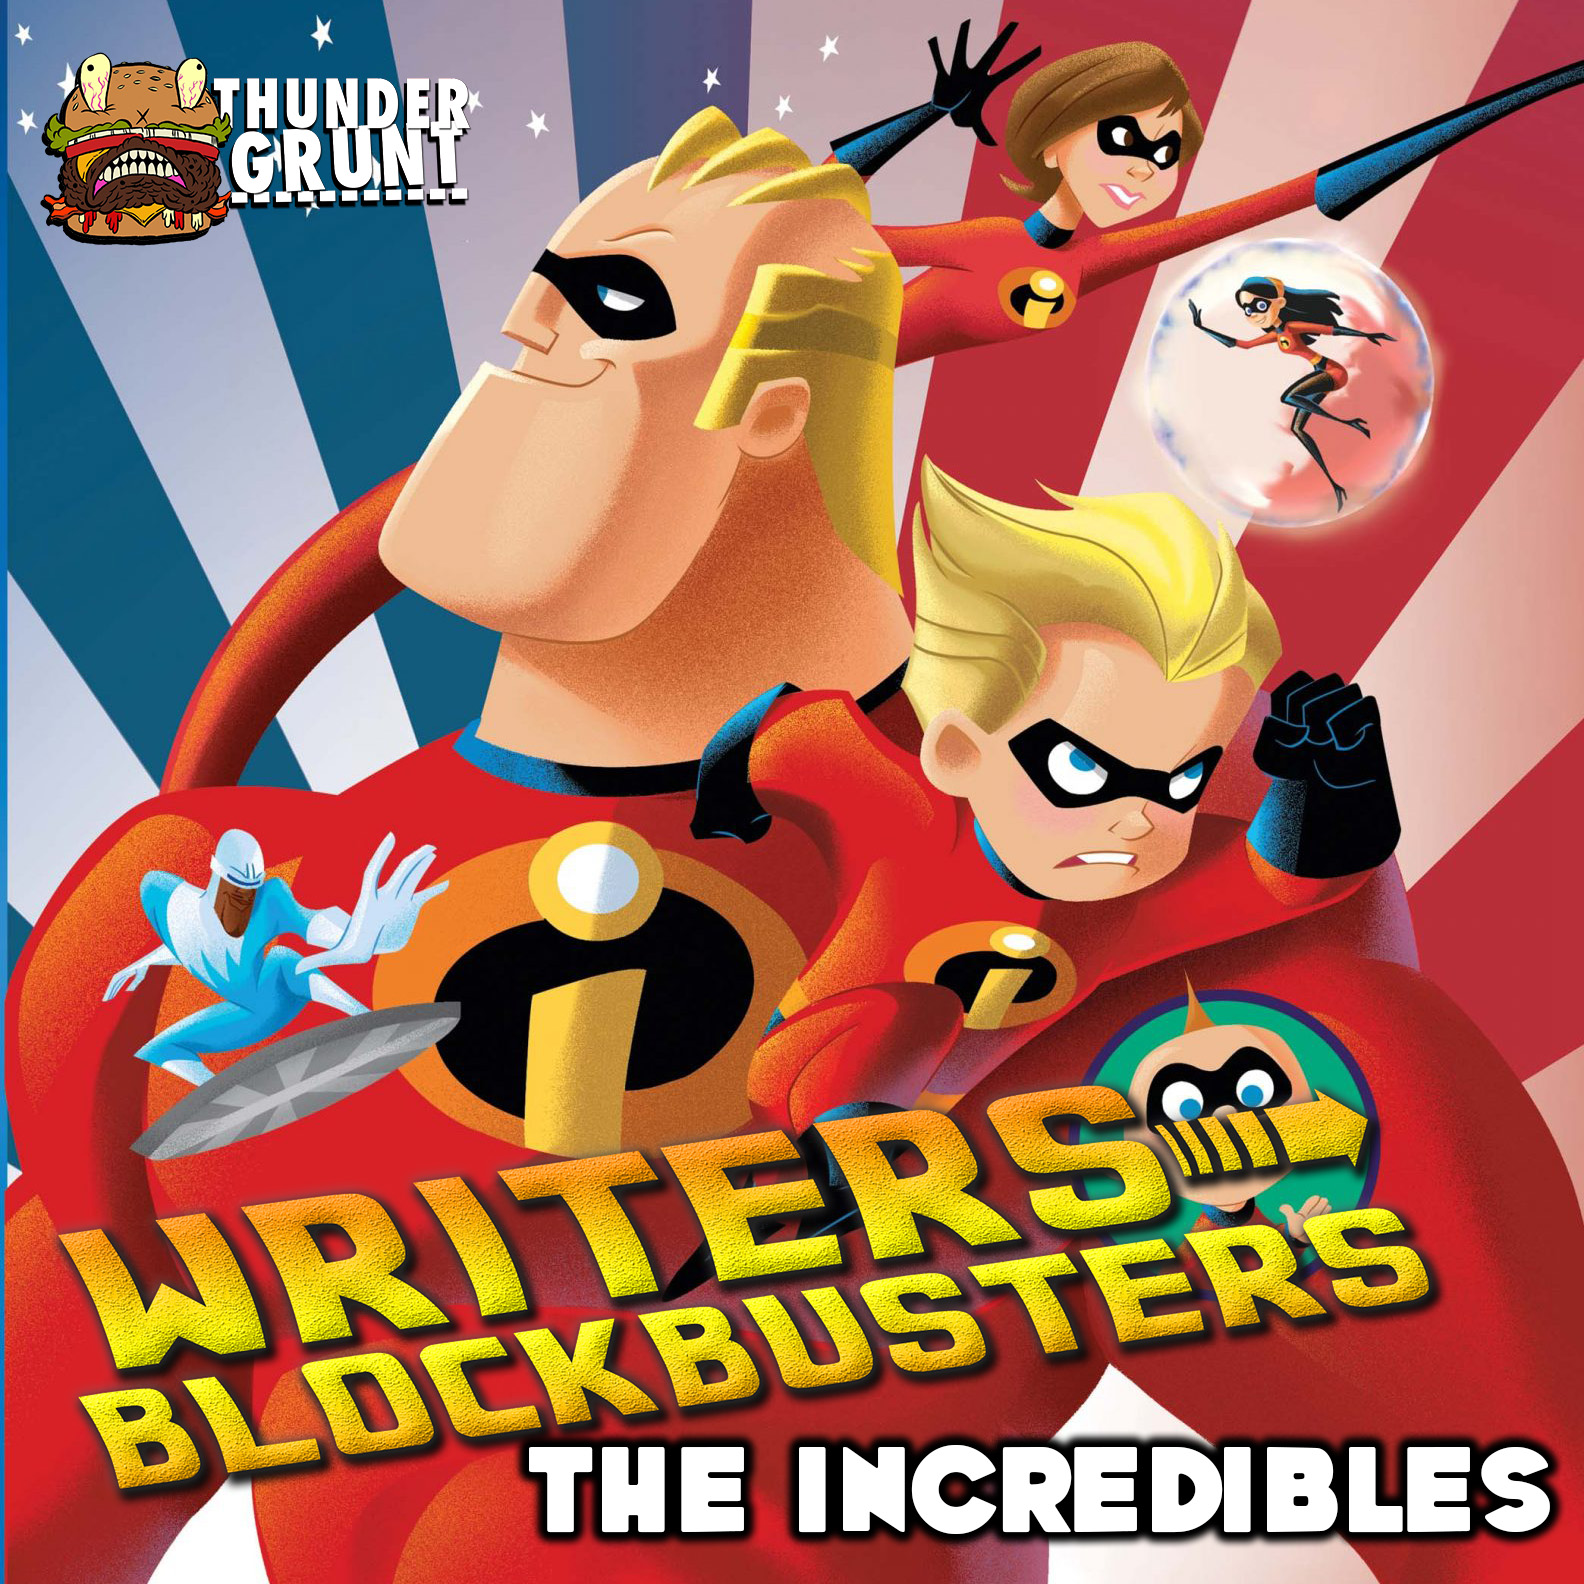 WRITERS/BLOCKBUSTERS 011 | THE INCREDIBLES